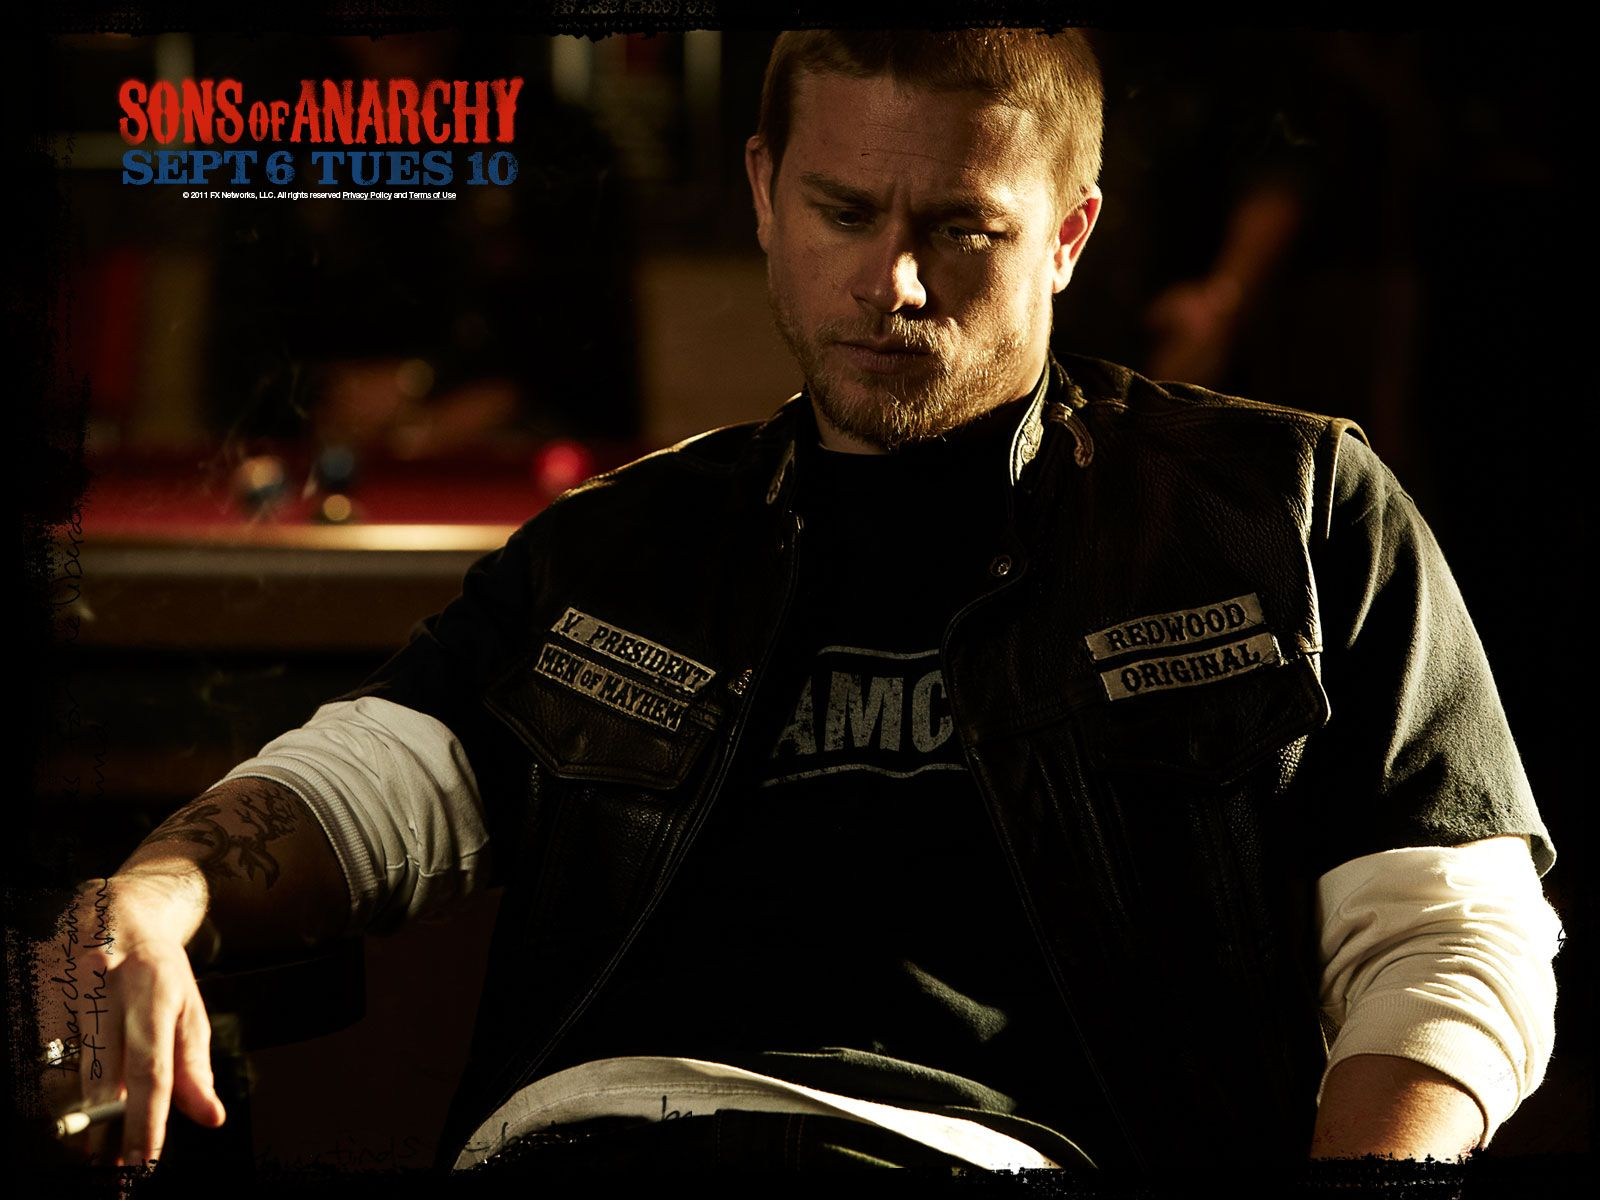 Sons Of Anarchy Wallpaper Jax Teller Sons Of Anarchy Jax Teller Jax Sons Of Anarchy